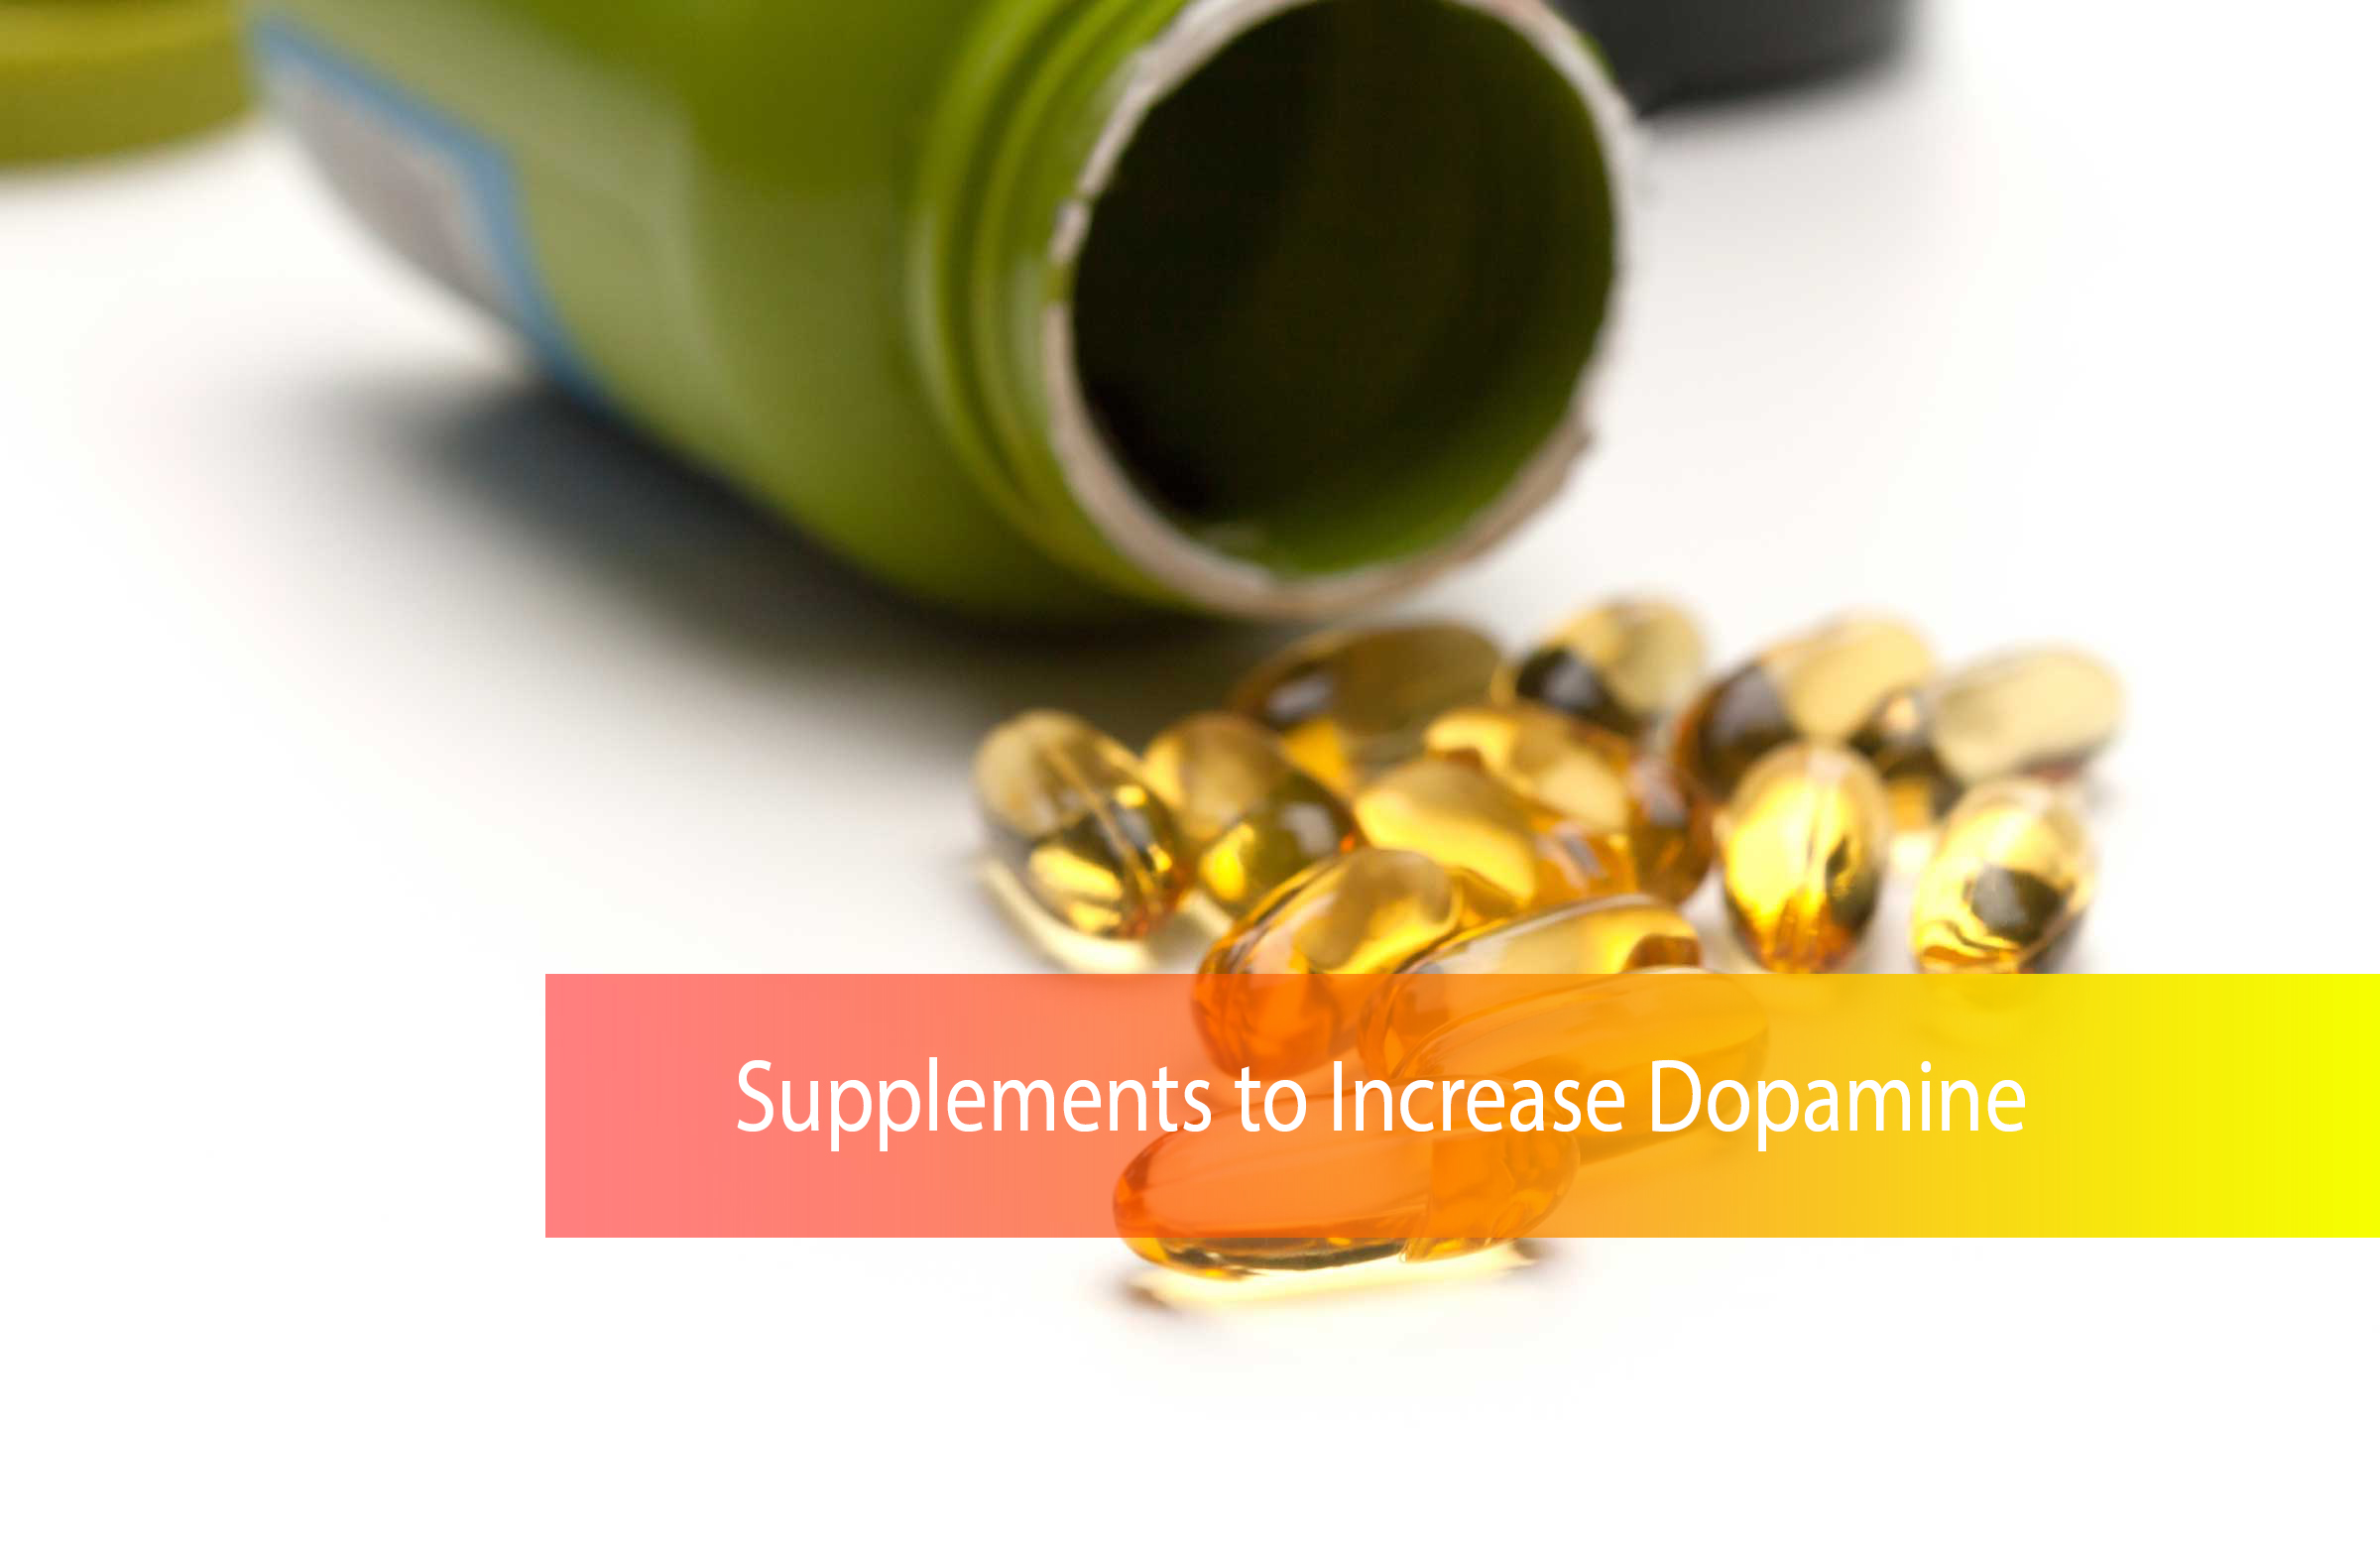 Supplements to Increase Dopamine